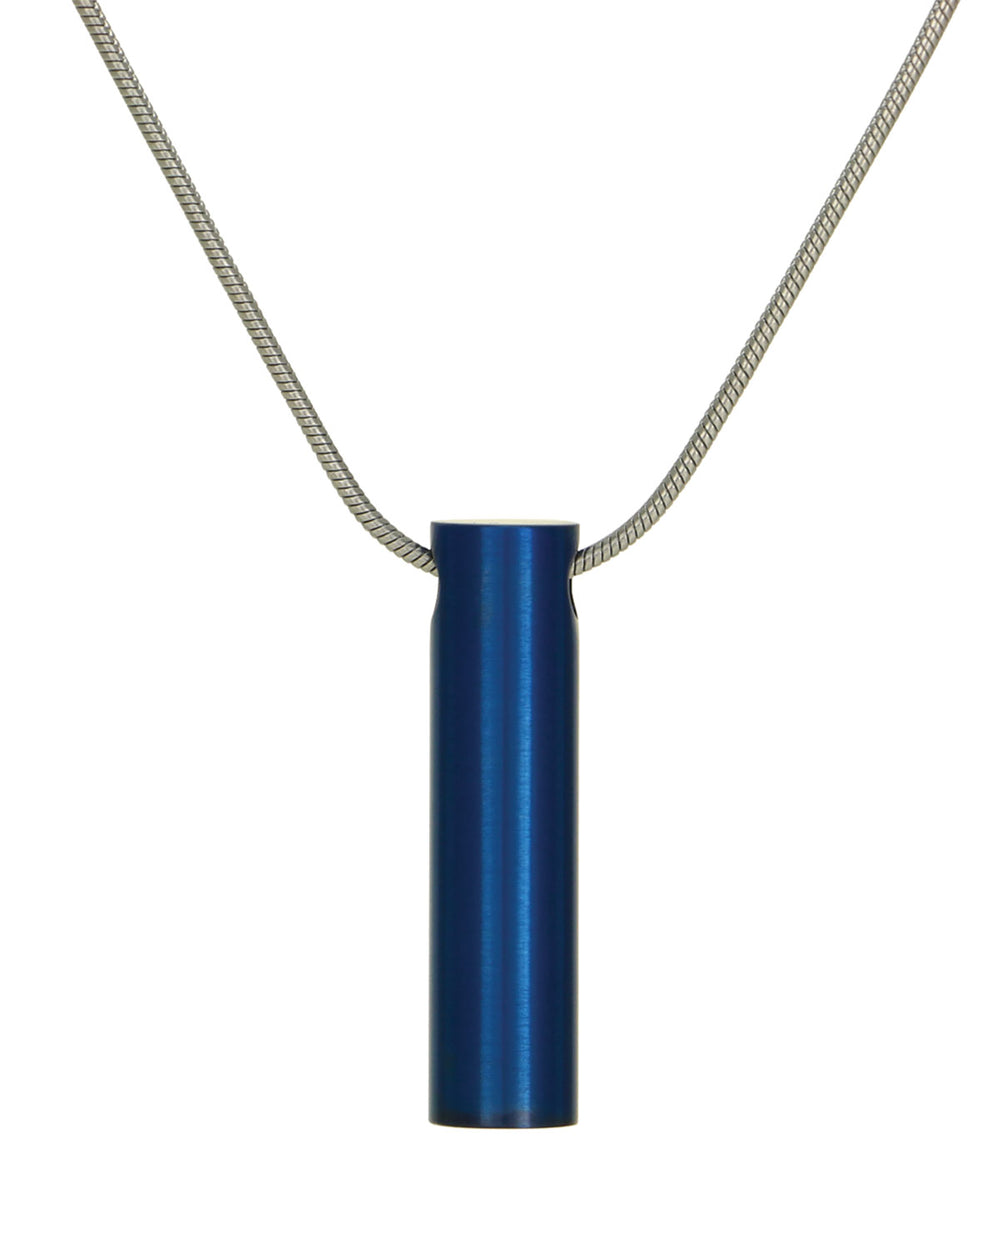 Cylinder Jewelry Pendant - Blue